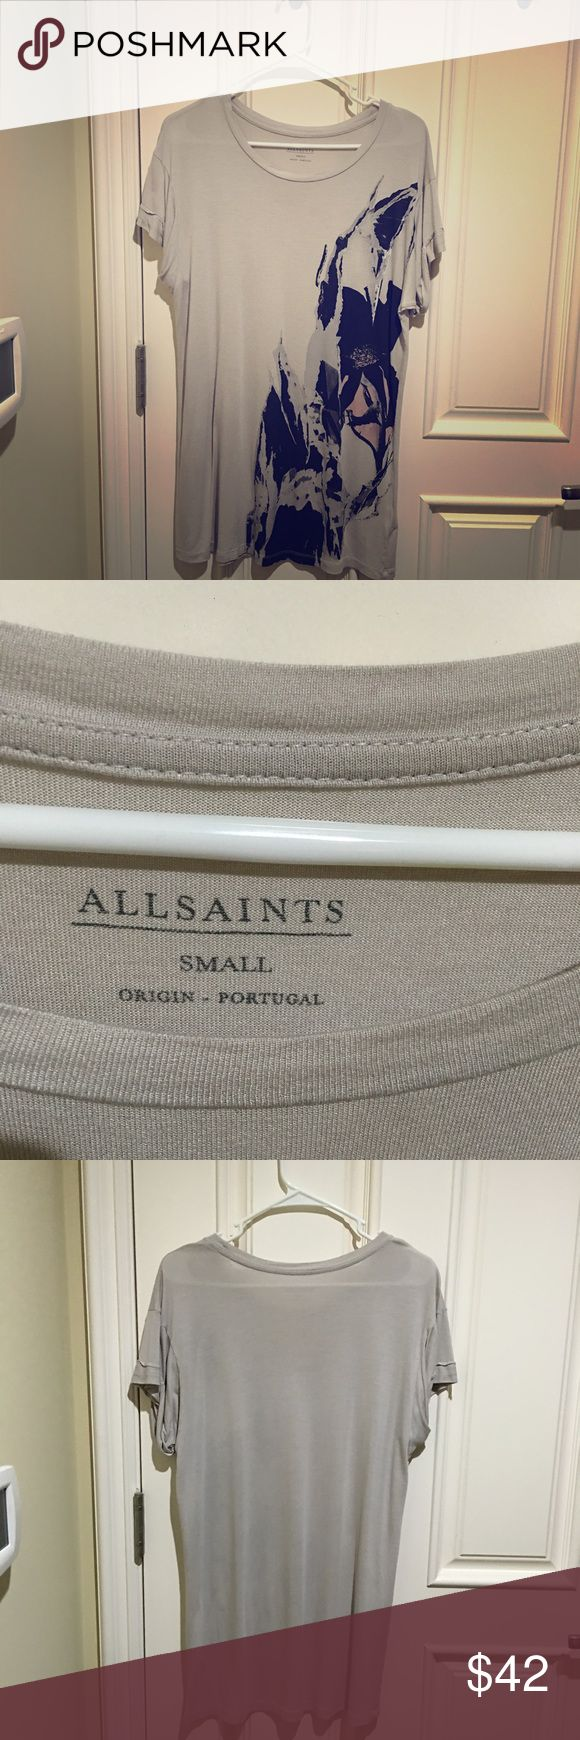 Allsaints T-shirt Fashion design and graphics, good for shorts and boots. Allsaints Tops Tees - Short Sleeve